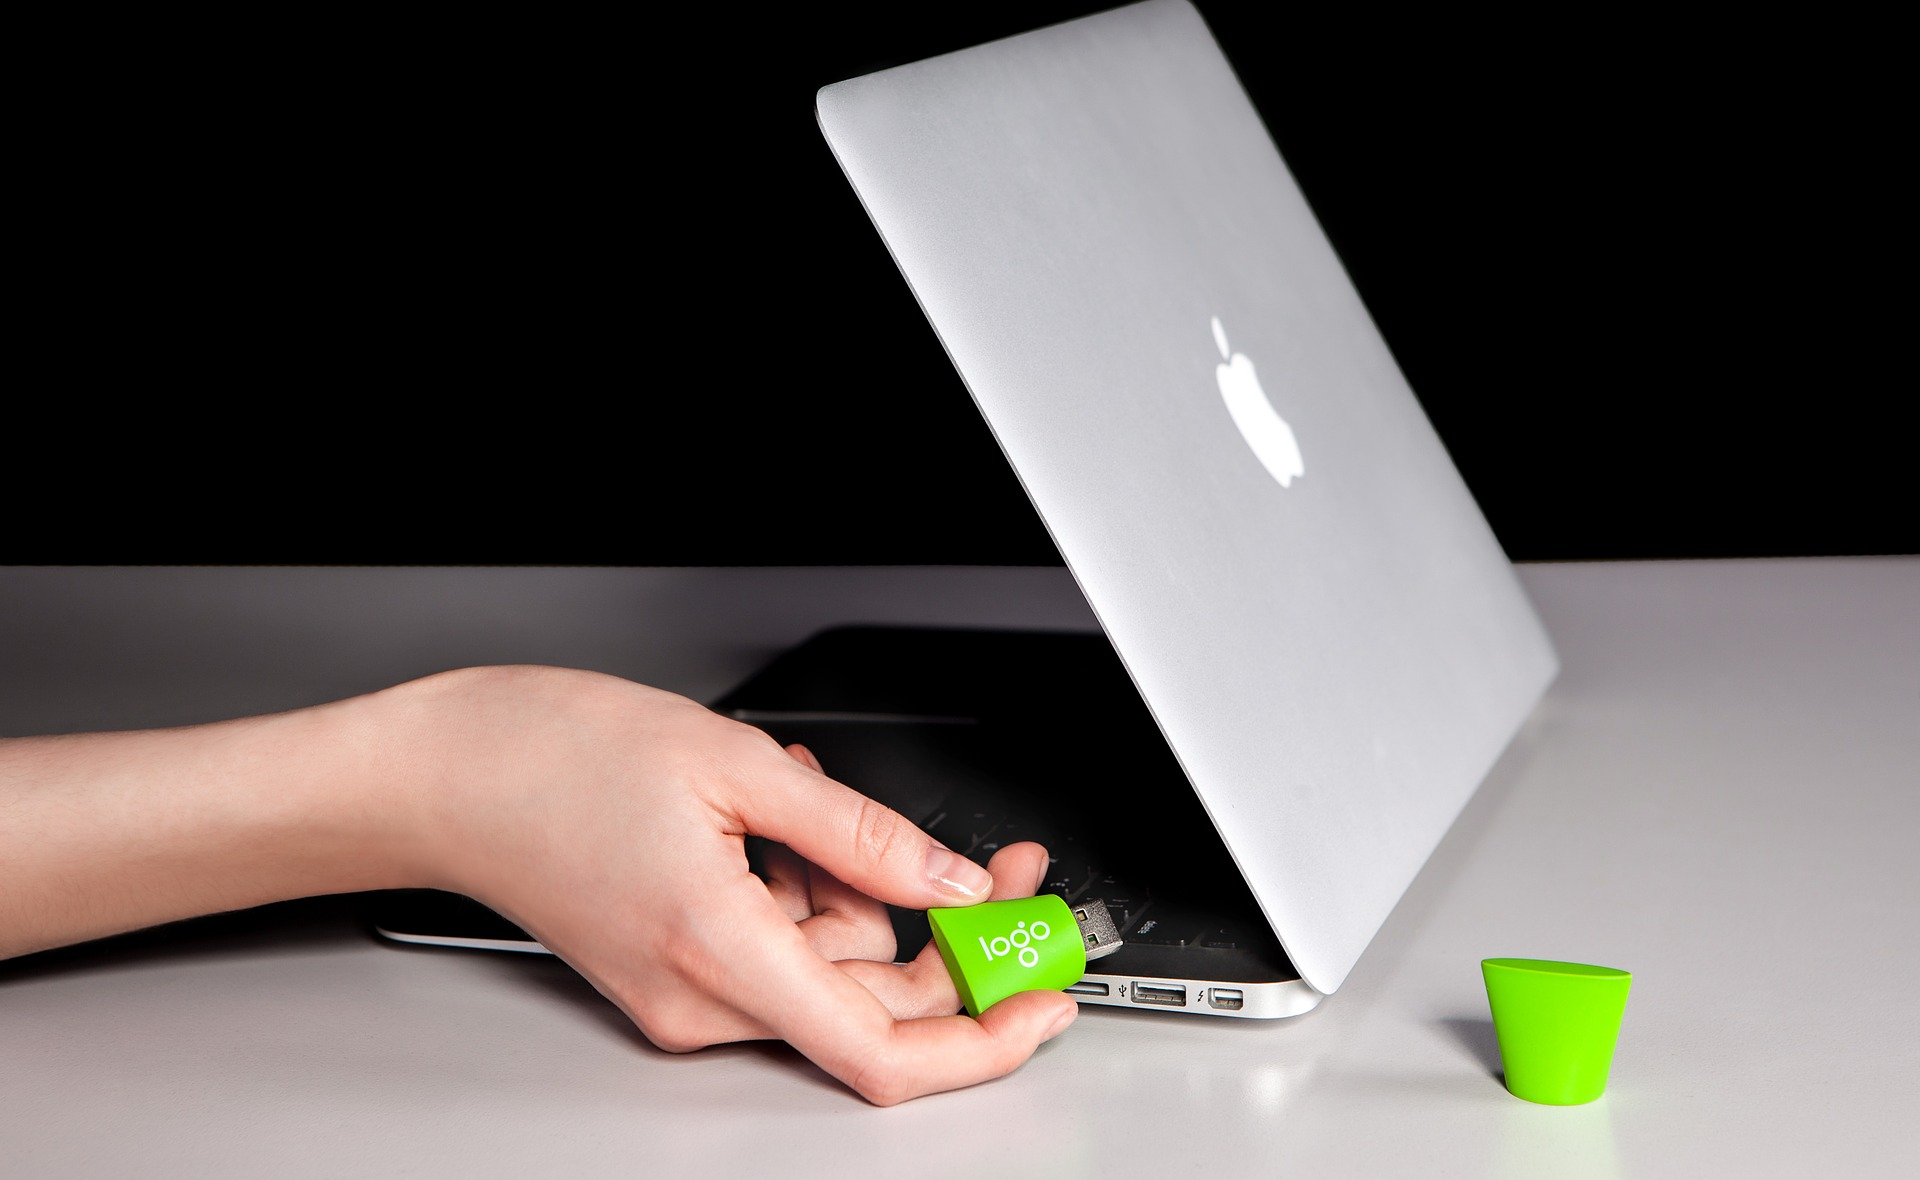 How to make a bootable pendrive for windows vista, 7,8 and 10 from ISO file.